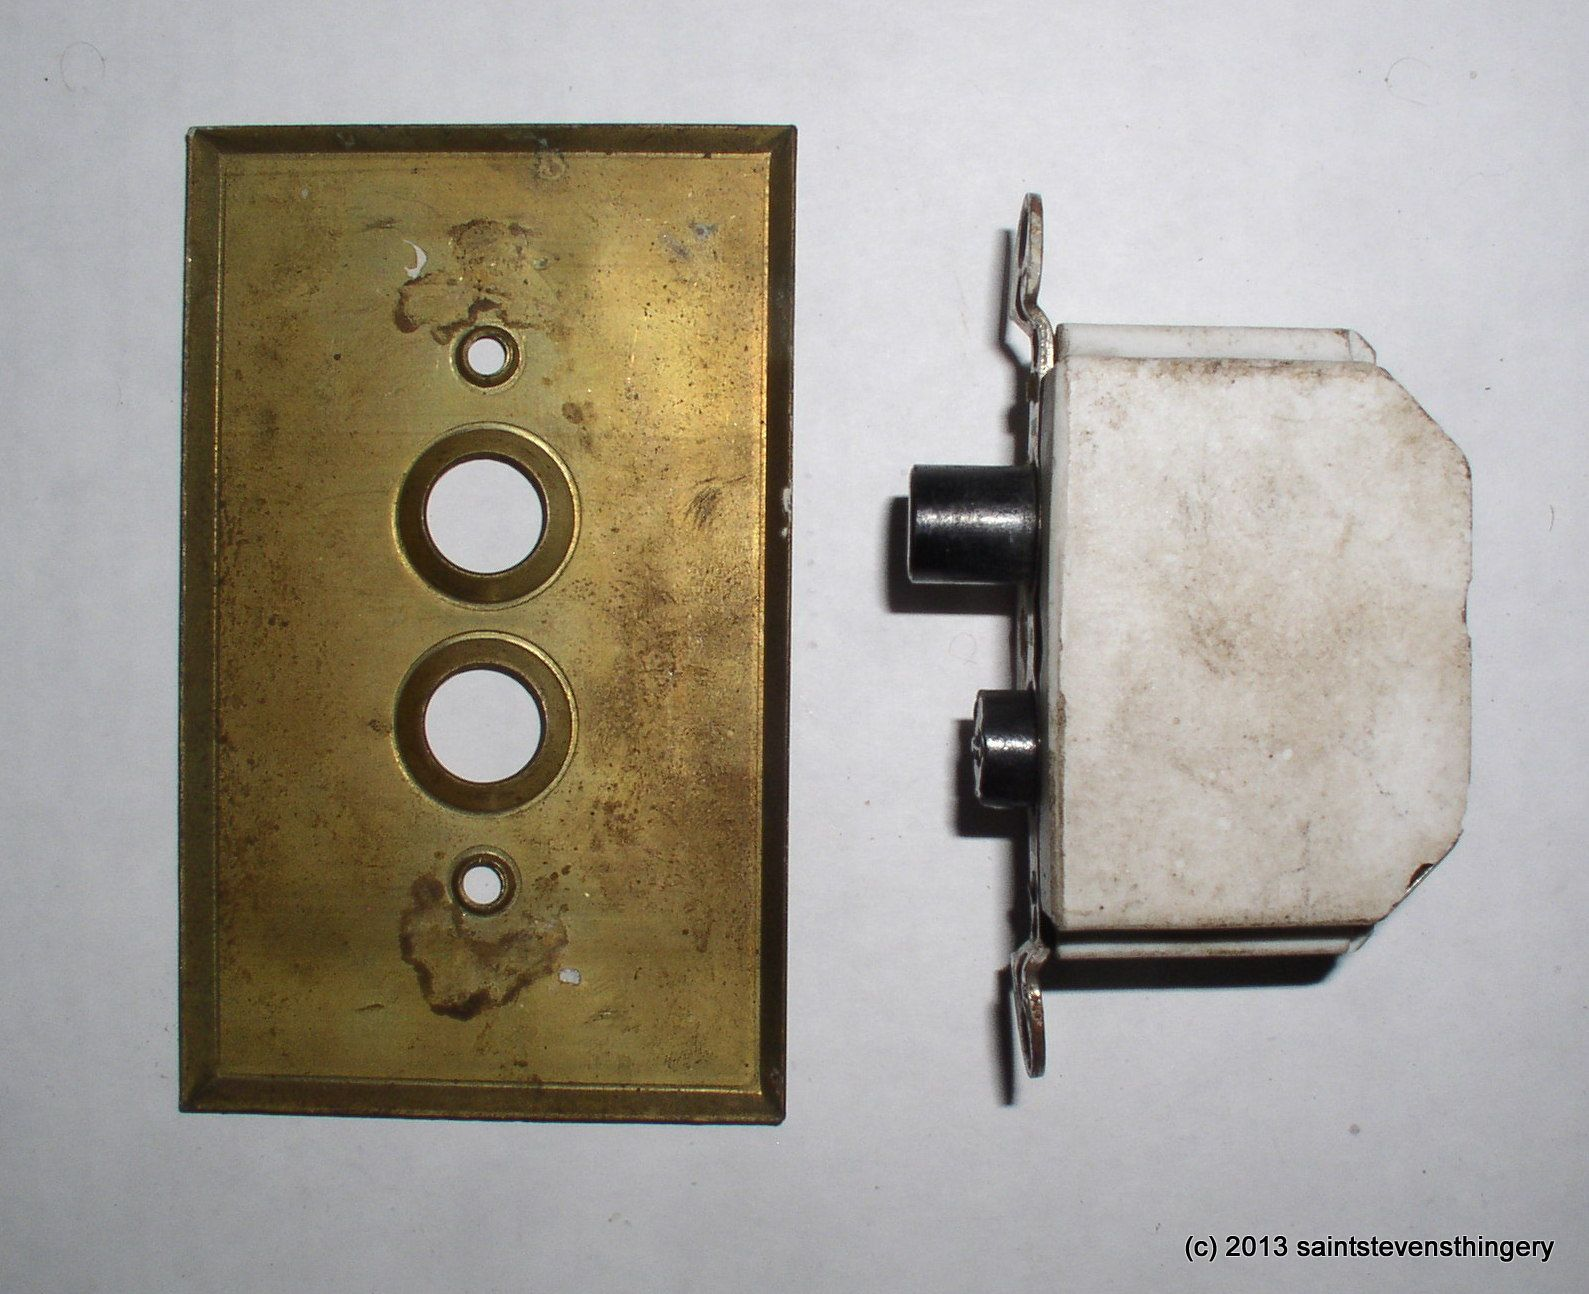 Brass Light Switch Covers Inspiration 1918 Light Switches  Vintage Arrow Push Button Light Switch Design Ideas